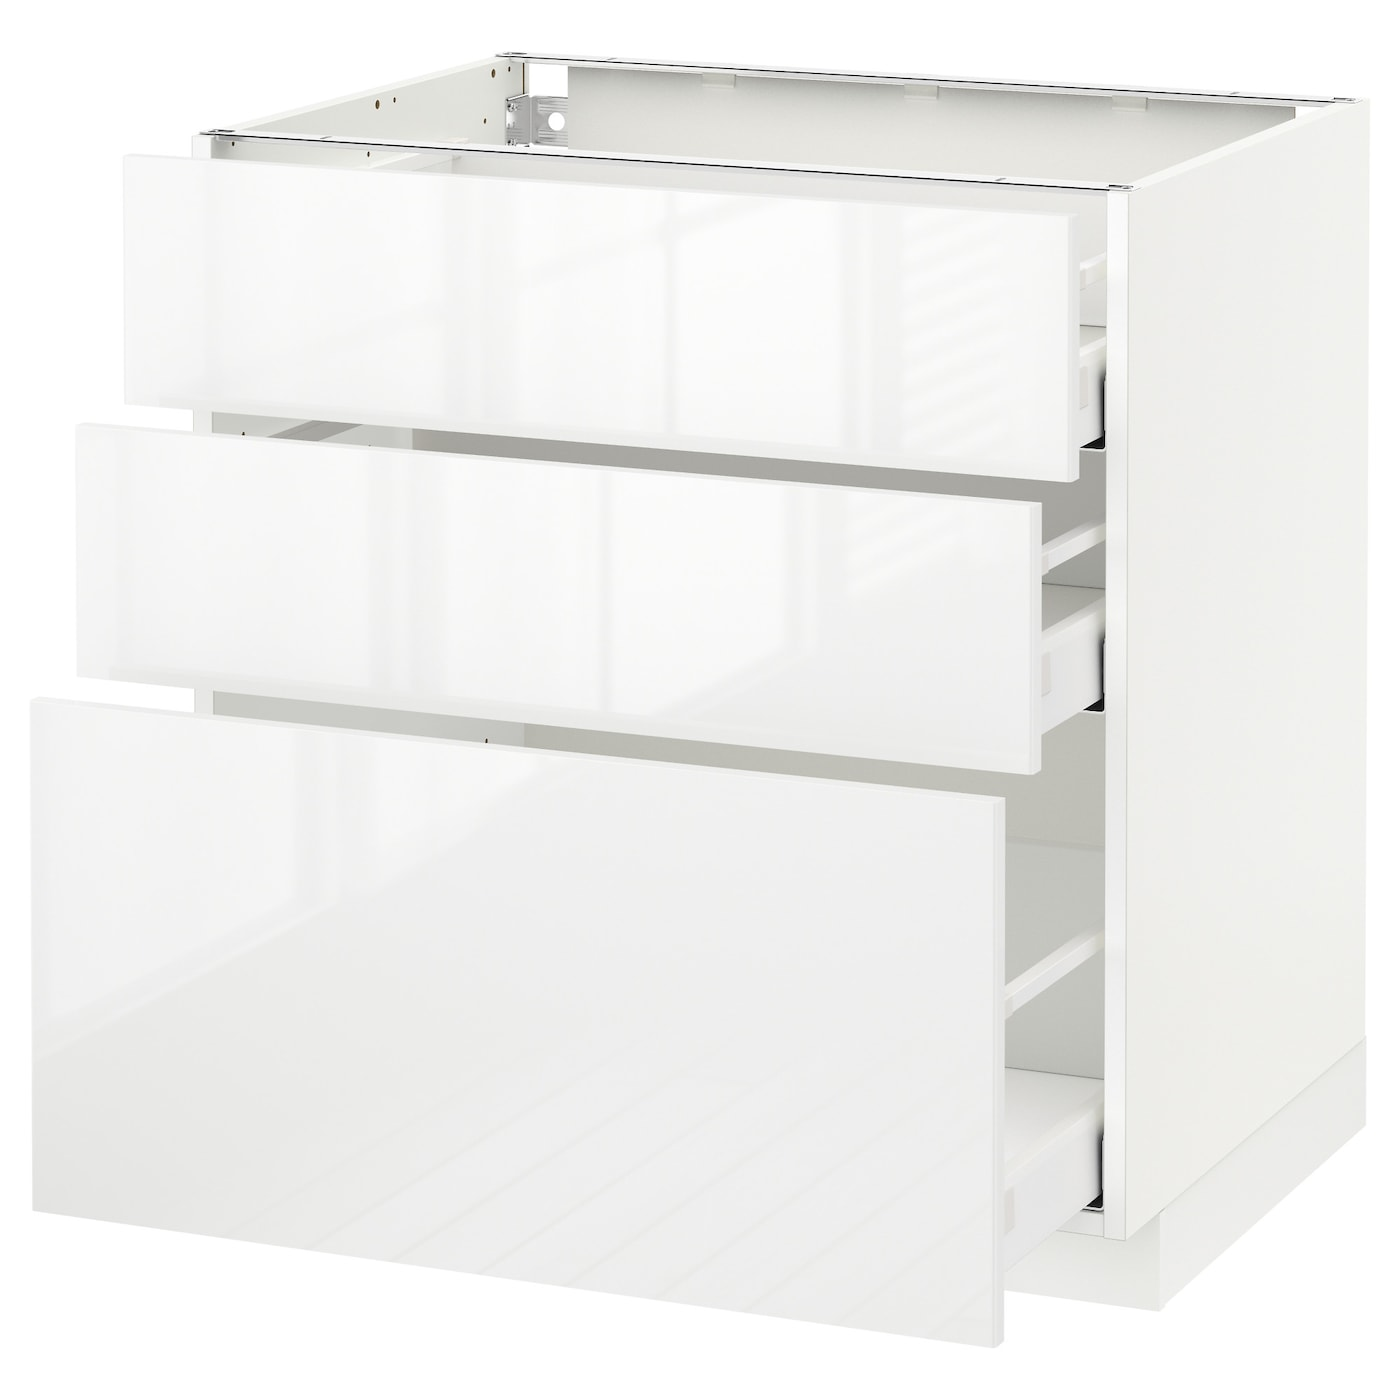 metod maximera base cabinet with 3 drawers white ringhult white 80 x 60 cm ikea. Black Bedroom Furniture Sets. Home Design Ideas